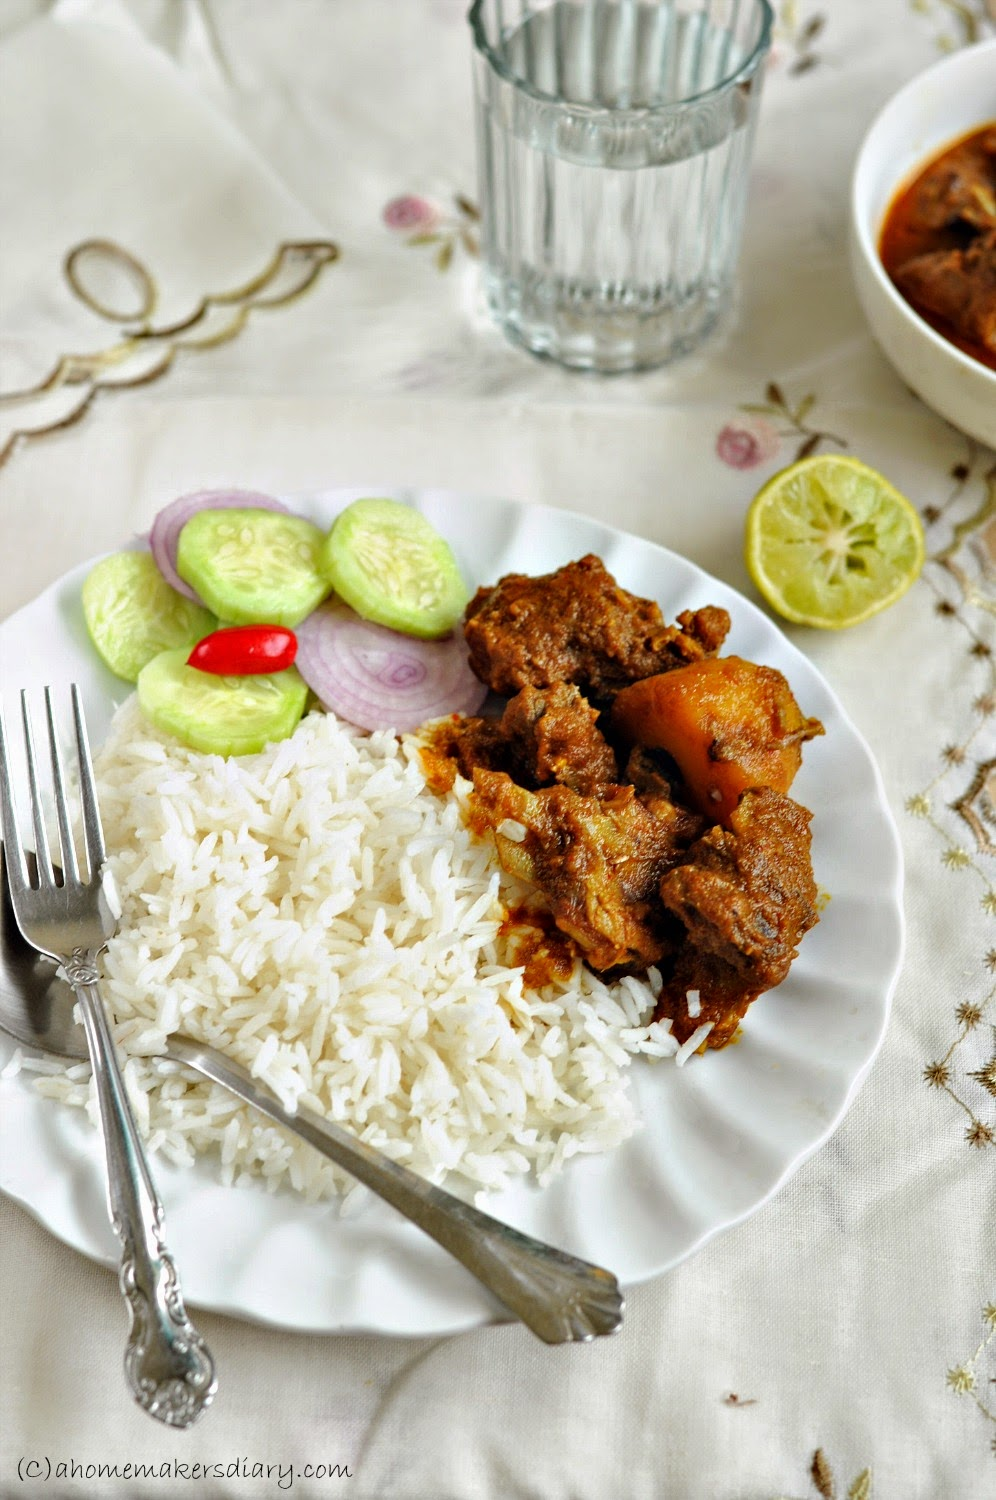 Sunday special mutton curry bengali goat meat curry a sunday special mutton curry bengali goat meat curry forumfinder Images